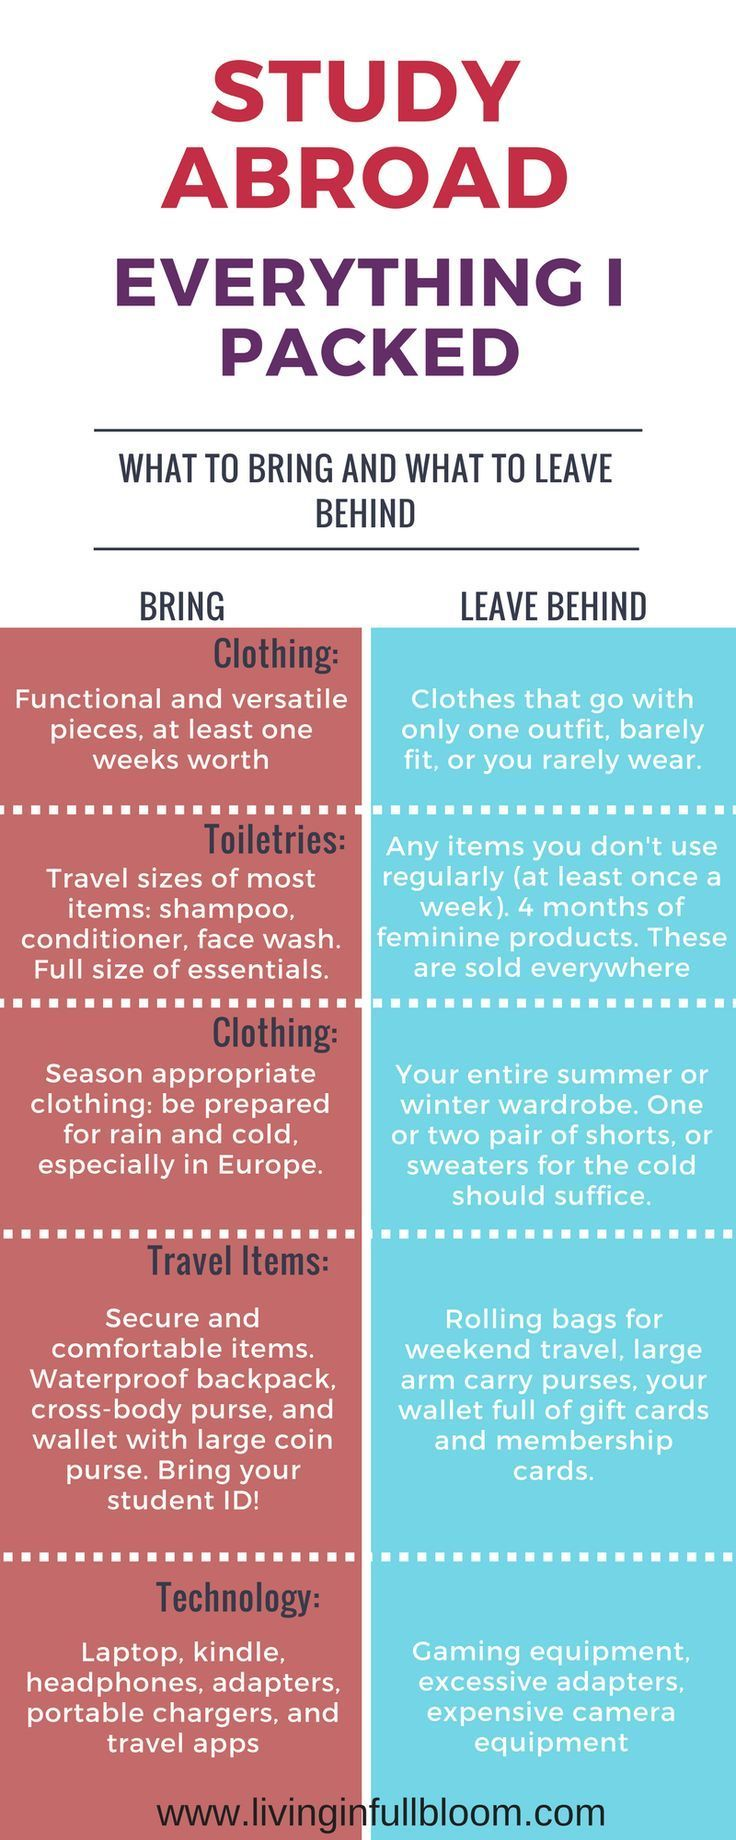 Study Abroad Packing List Travel Outfits In 2020 Abroad Packing List Study Abroad Packing Abroad Packing